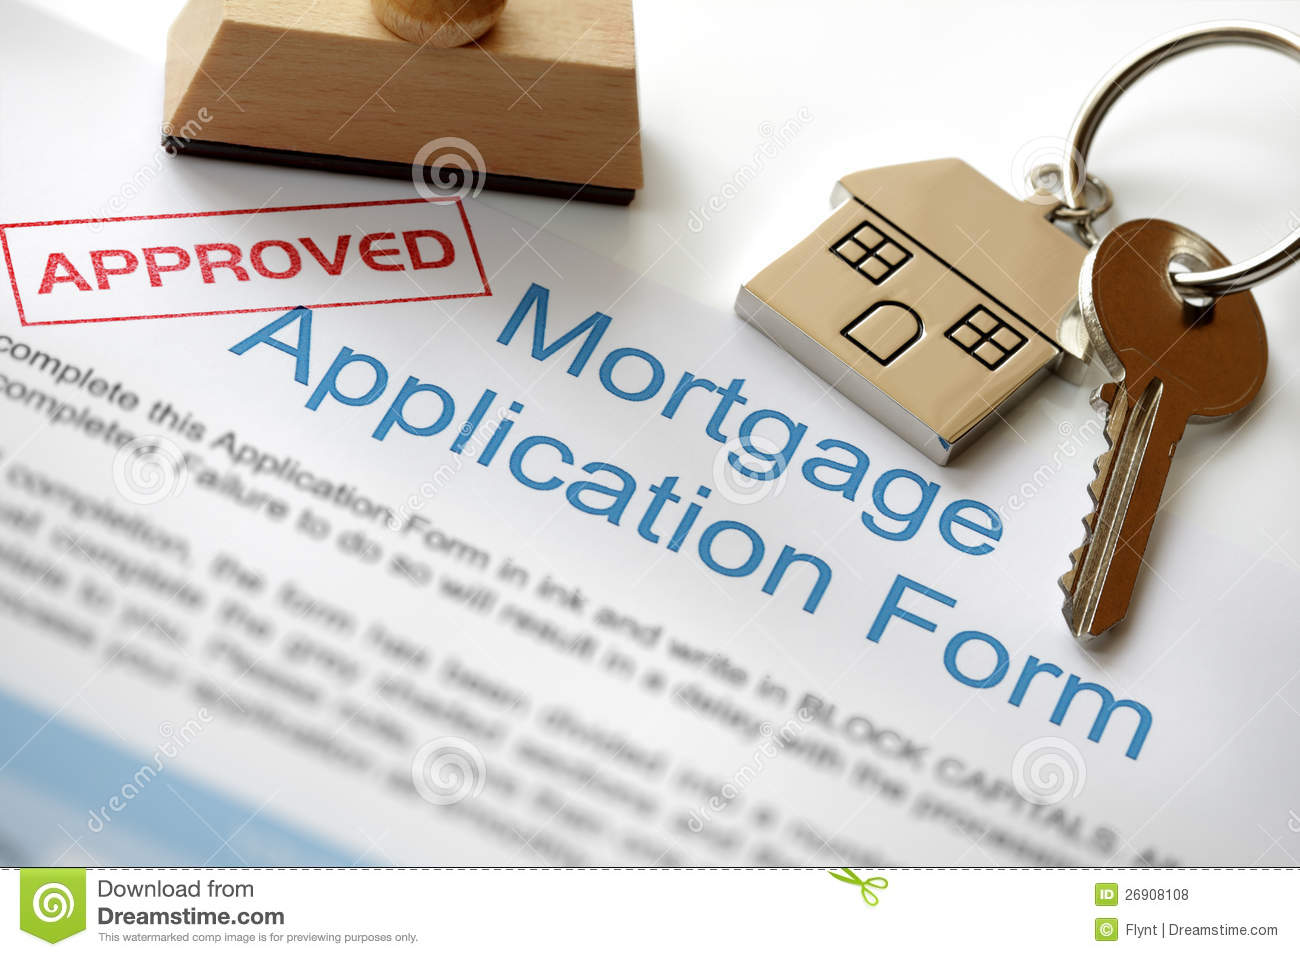 Approved Mortgage Application Stock Photo - Image: 26908108